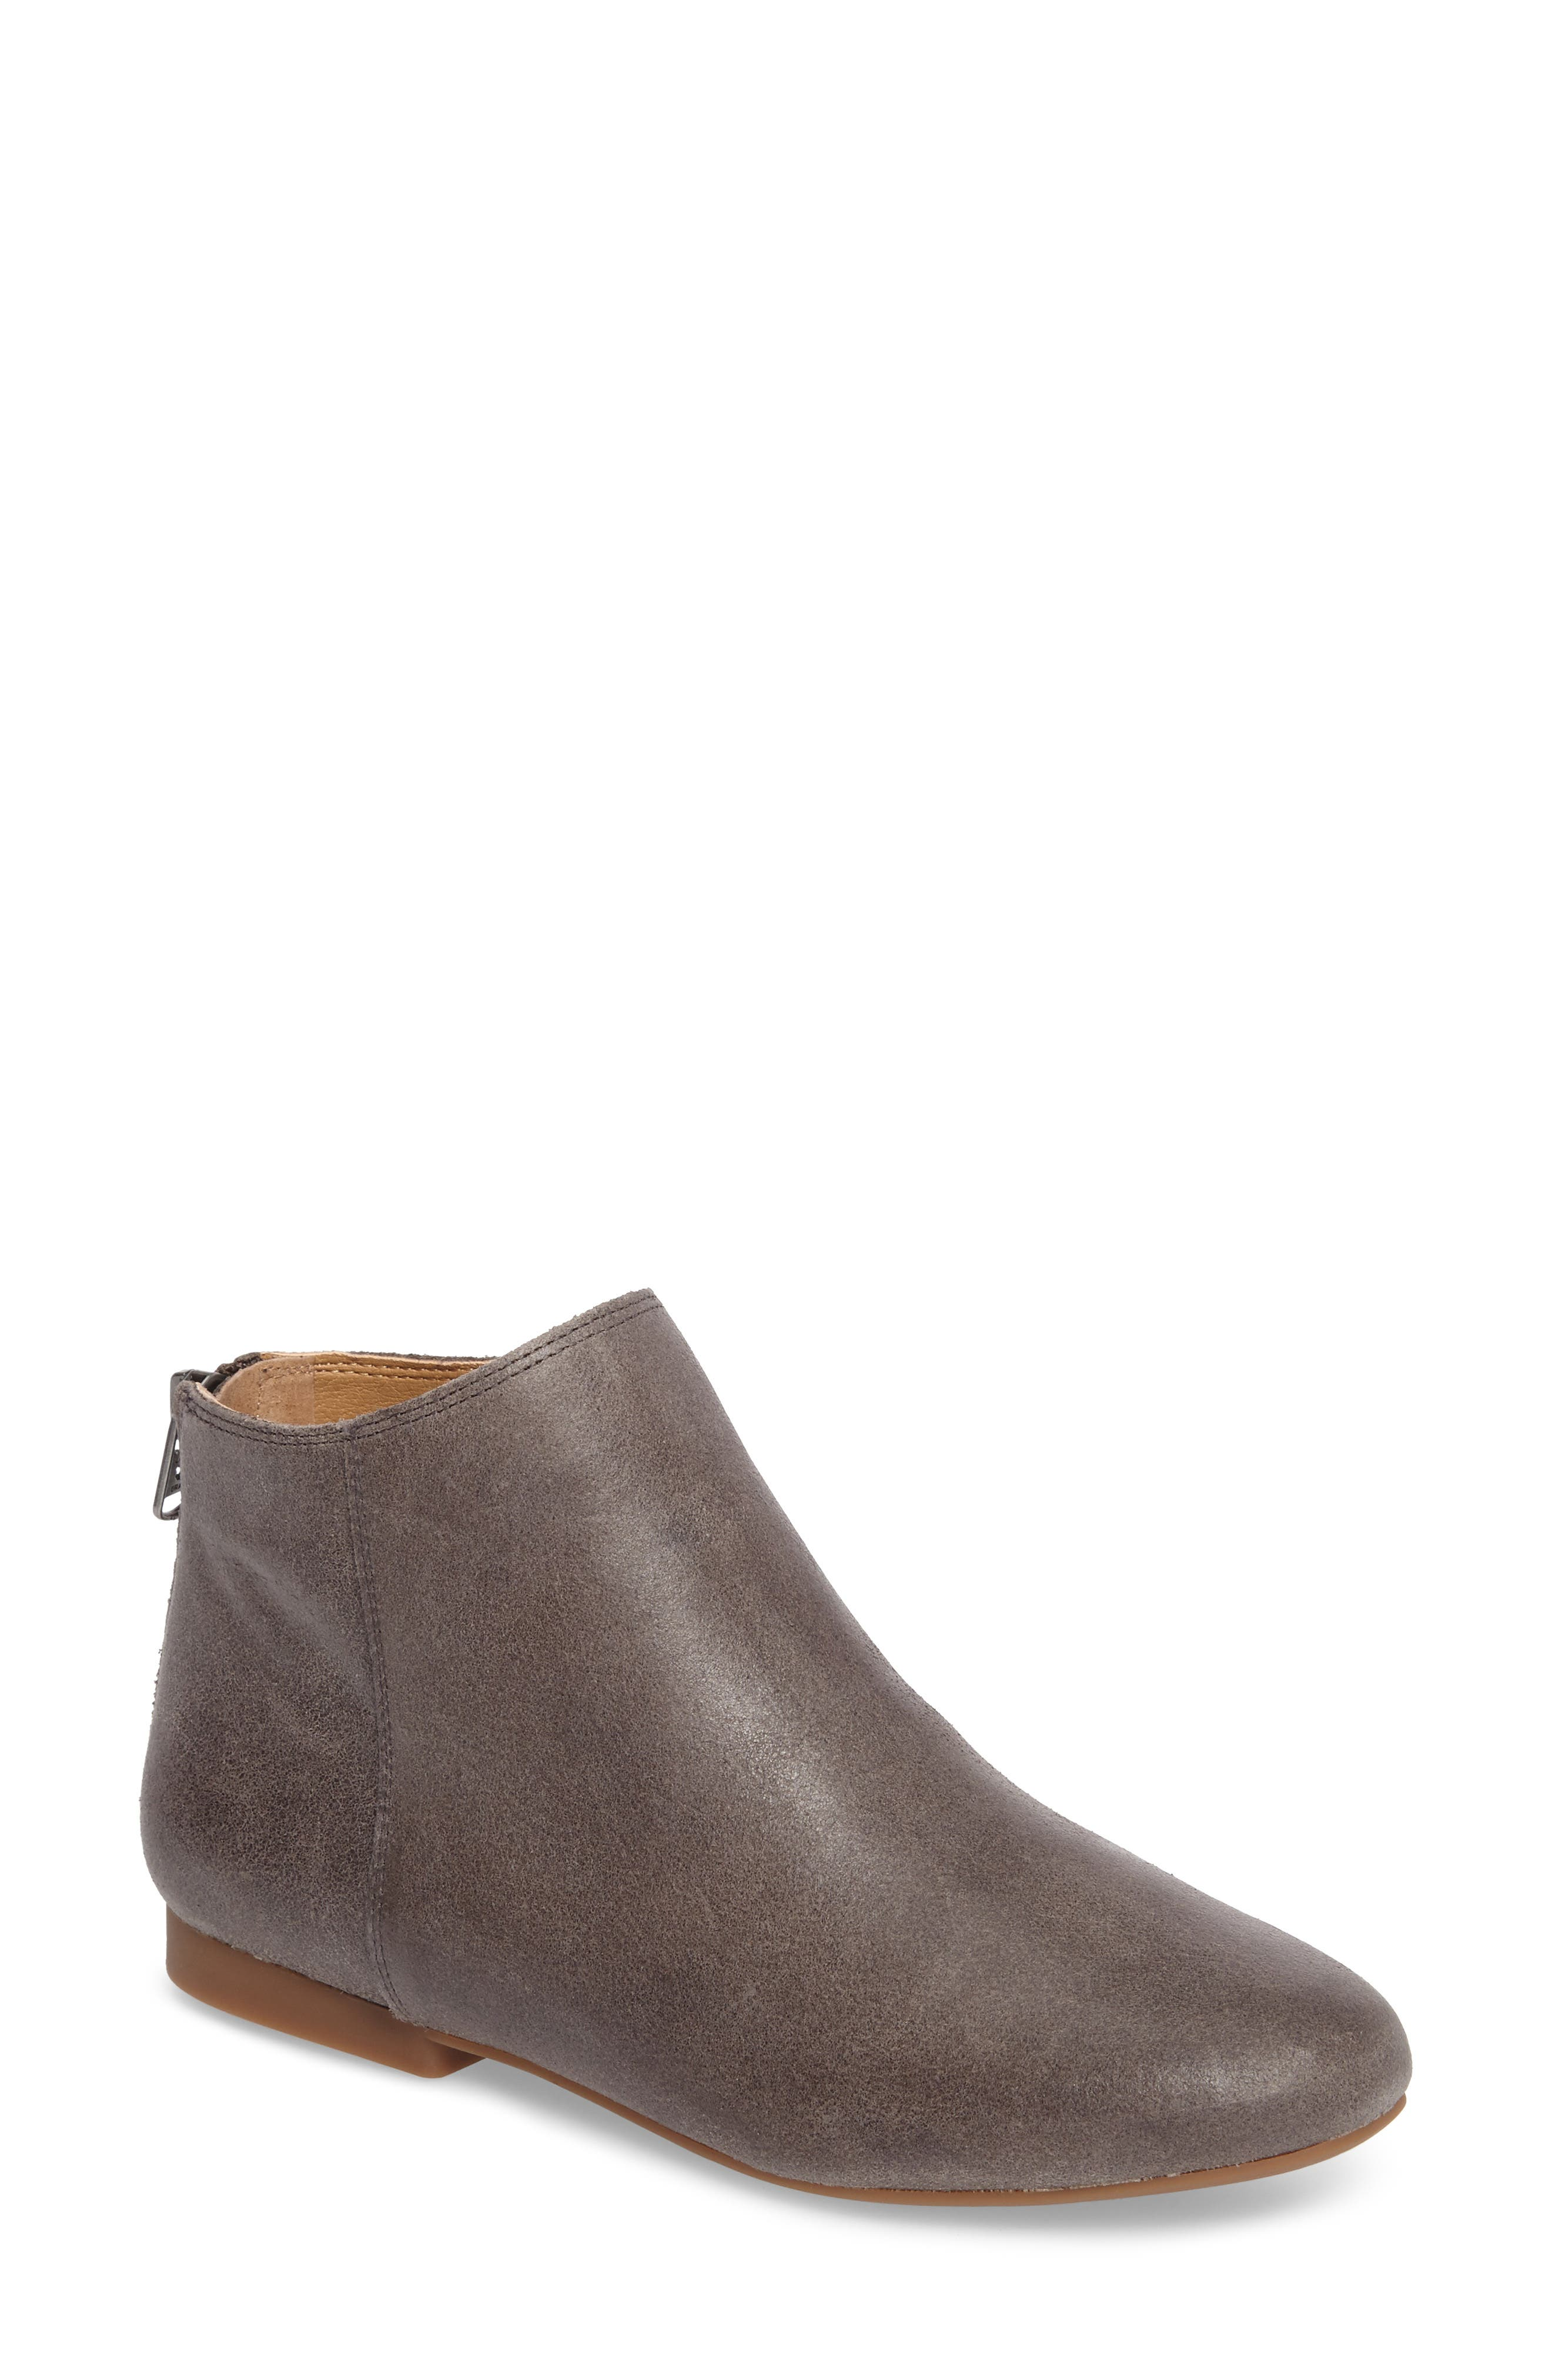 Alternate Image 1 Selected - Lucky Brand Gaines Bootie (Women)